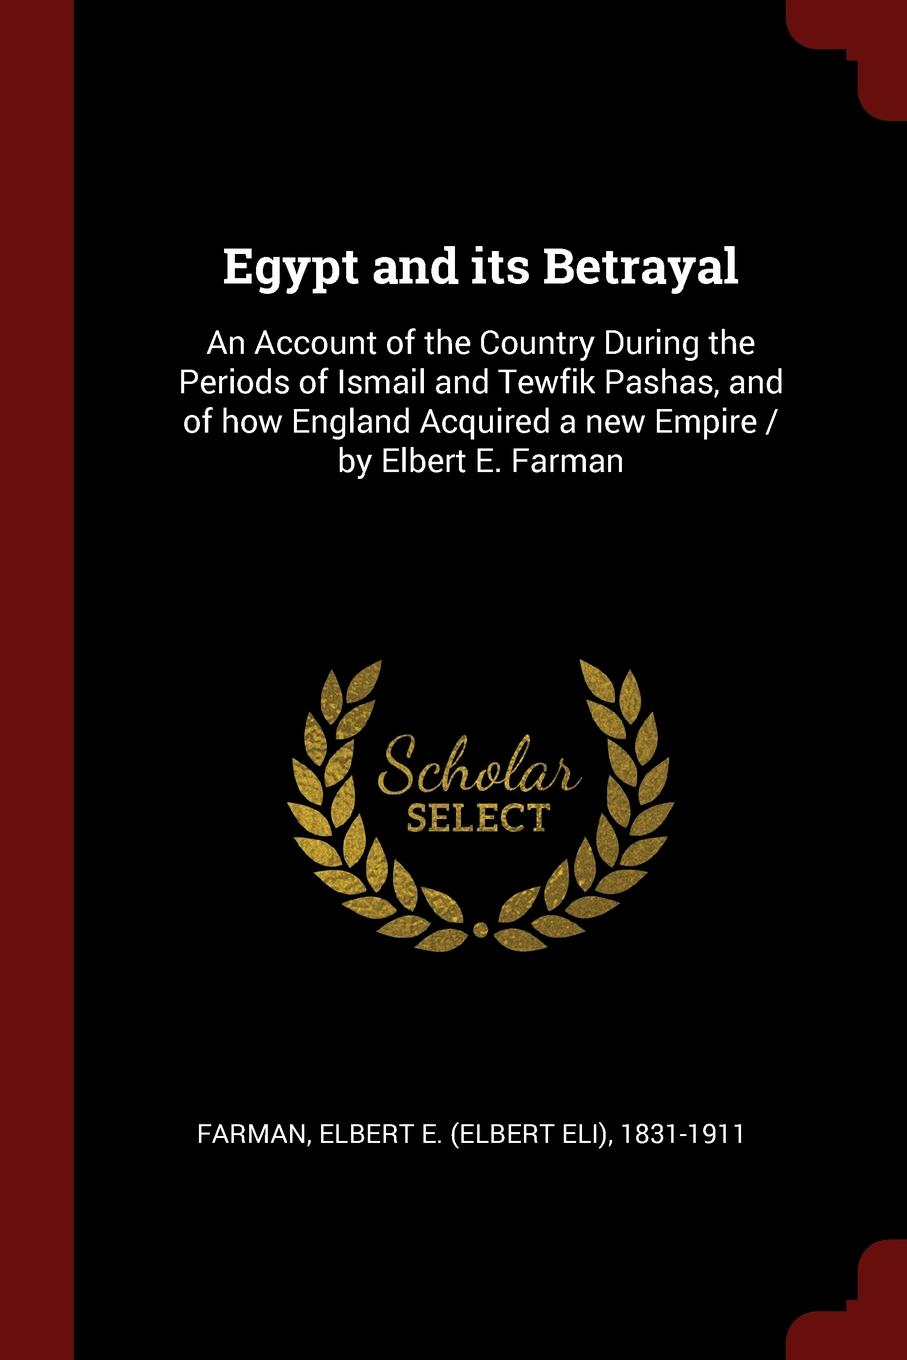 Egypt and its Betrayal. An Account of the Country During the Periods of Ismail and Tewfik Pashas, and of how England Acquired a new Empire / by Elbert E. Farman new and original zd 70n optex photoelectric switch photoelectric sensor npn output